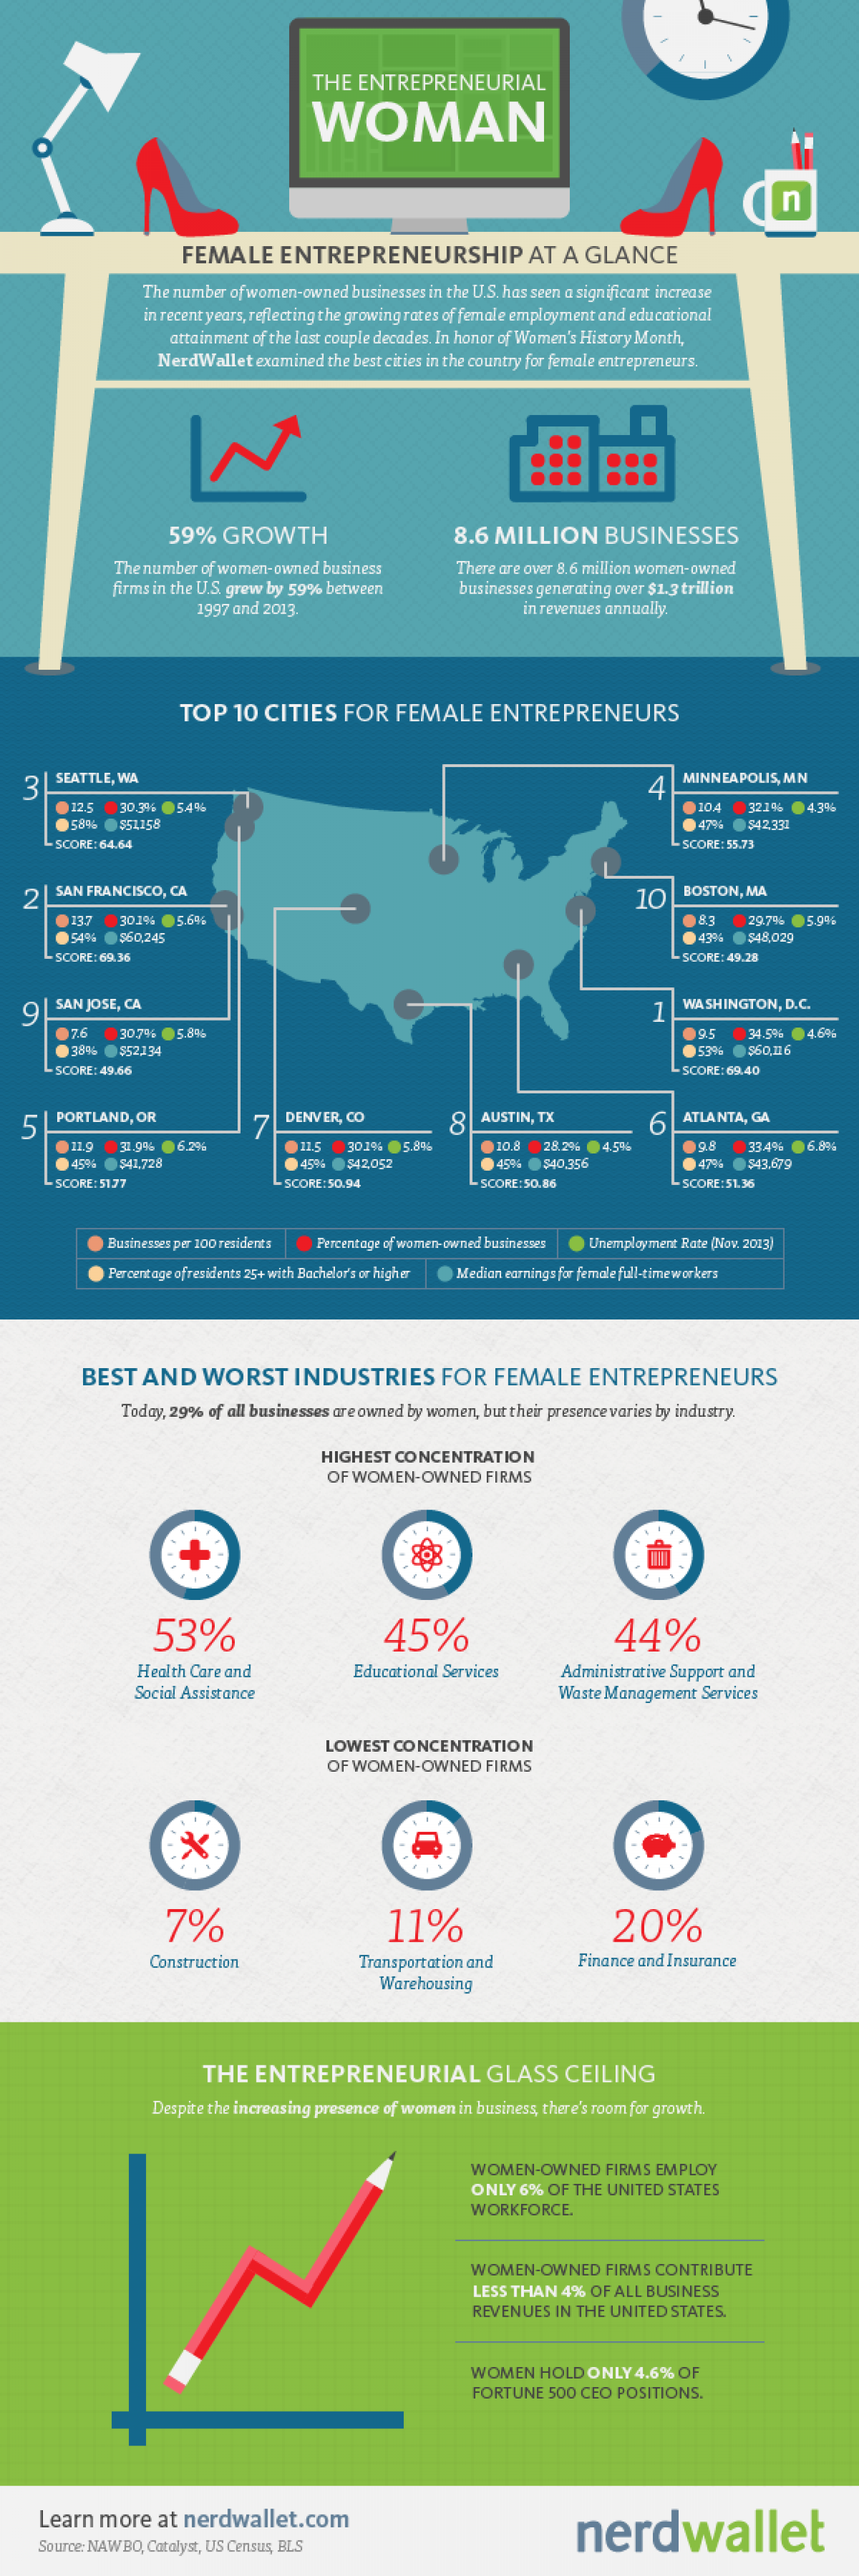 The Entrepreneurial Woman Infographic